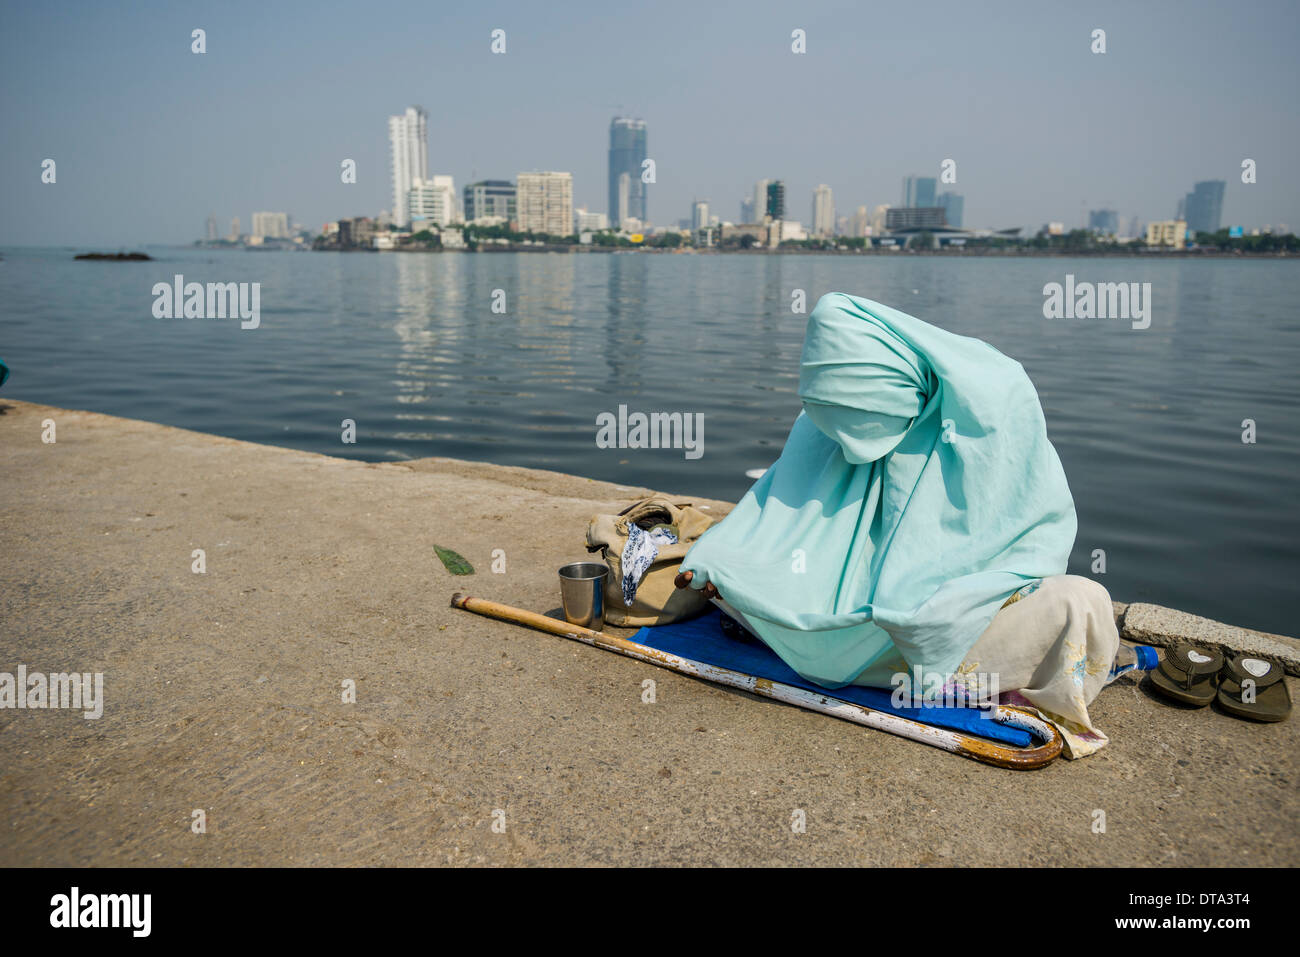 A Muslim woman wearing a burka is begging for money on the walkway, Mahalaksmi, Mumbai, Maharashtra, India - Stock Image